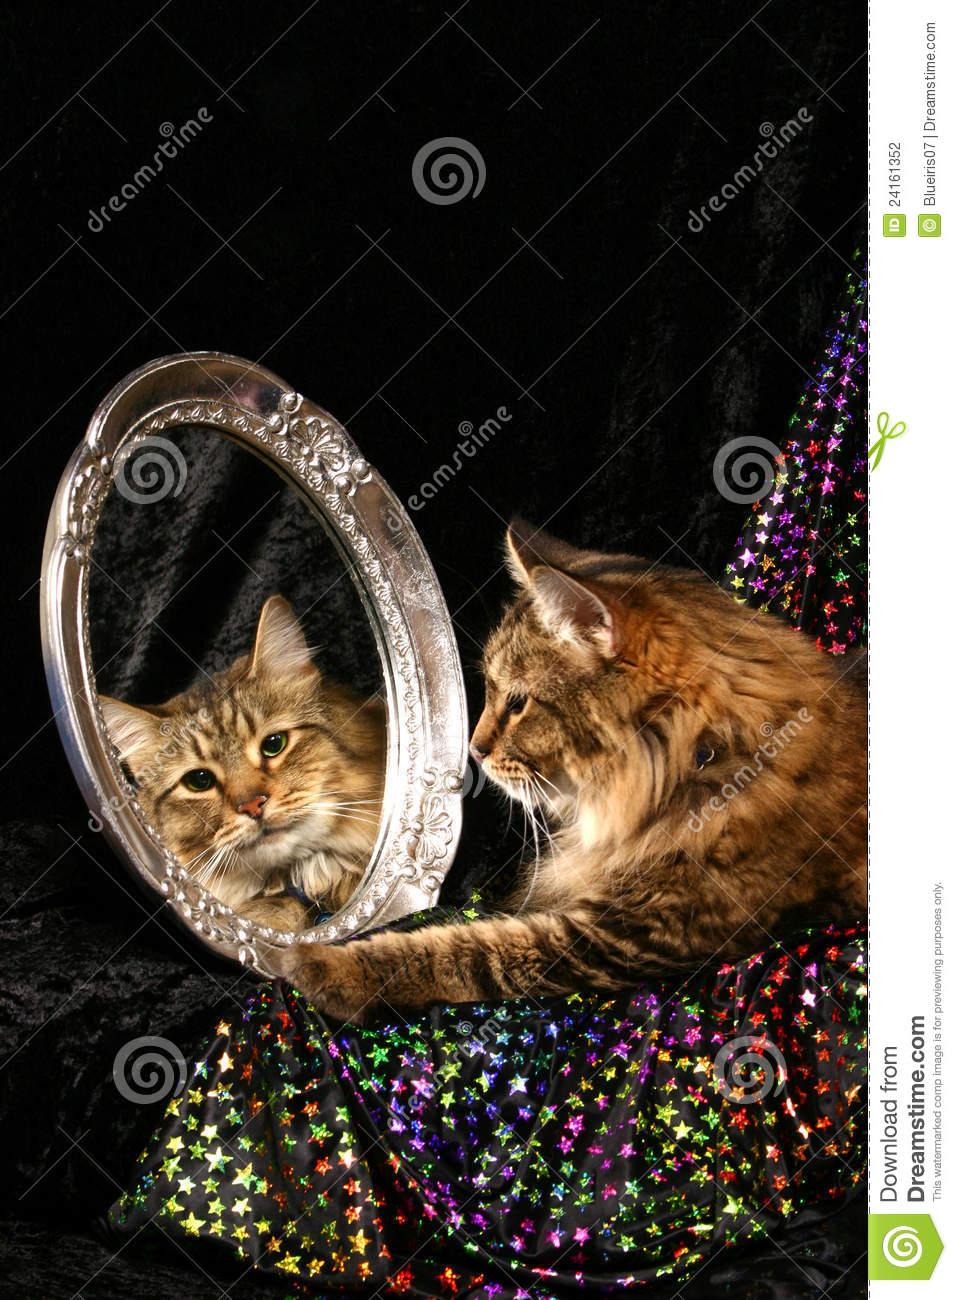 Cat In A Mirror Stock Photo Image Of Green Stripes